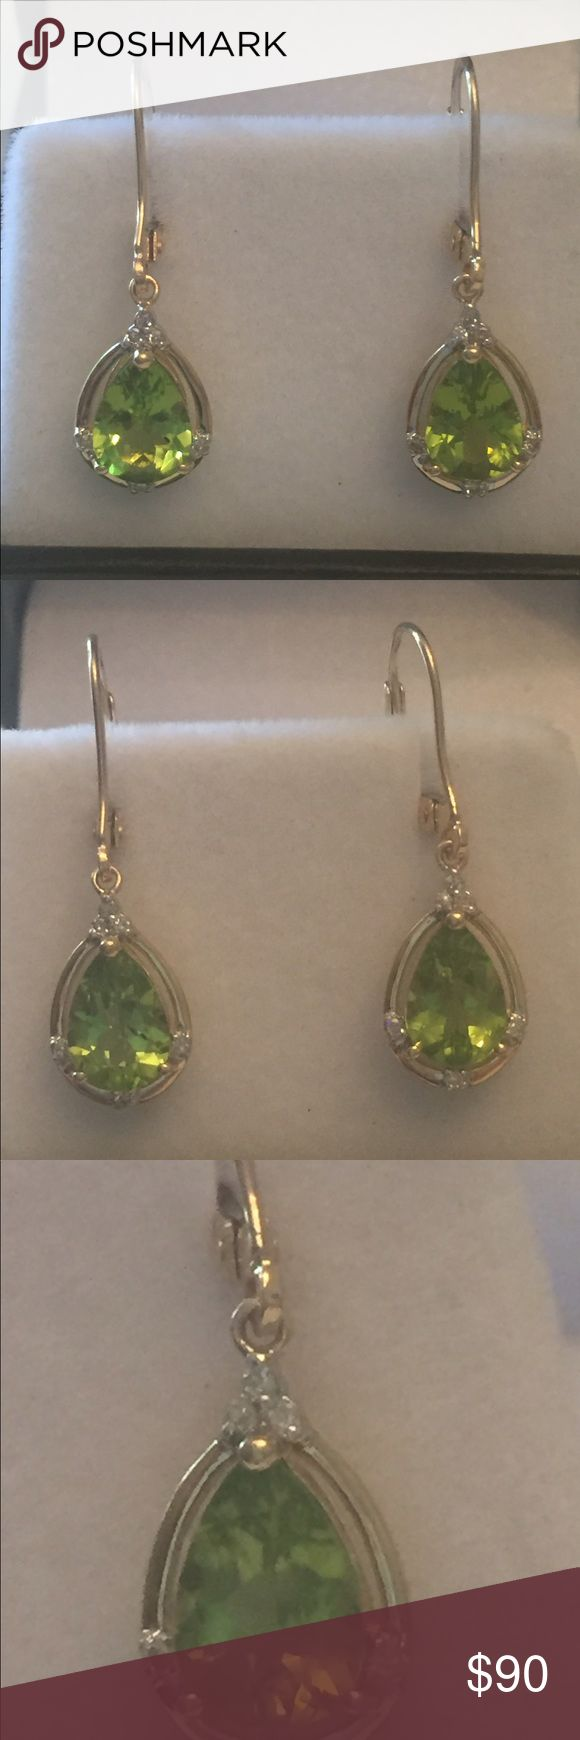 Peridot and diamond earrings  in 14 kt yellow gold Brand new 2 Ct pear shaped peridot (1 carat each earring) and diamond earrings ( 6 diamonds in each earring) set in 14 kt yellow gold. Peridots are AAAA quality which is the best. Their color is bright with no inclusions. The diamonds are approximately I- J color. There's a 14 kt stamp which can be seen in the photos. Jewelry Earrings